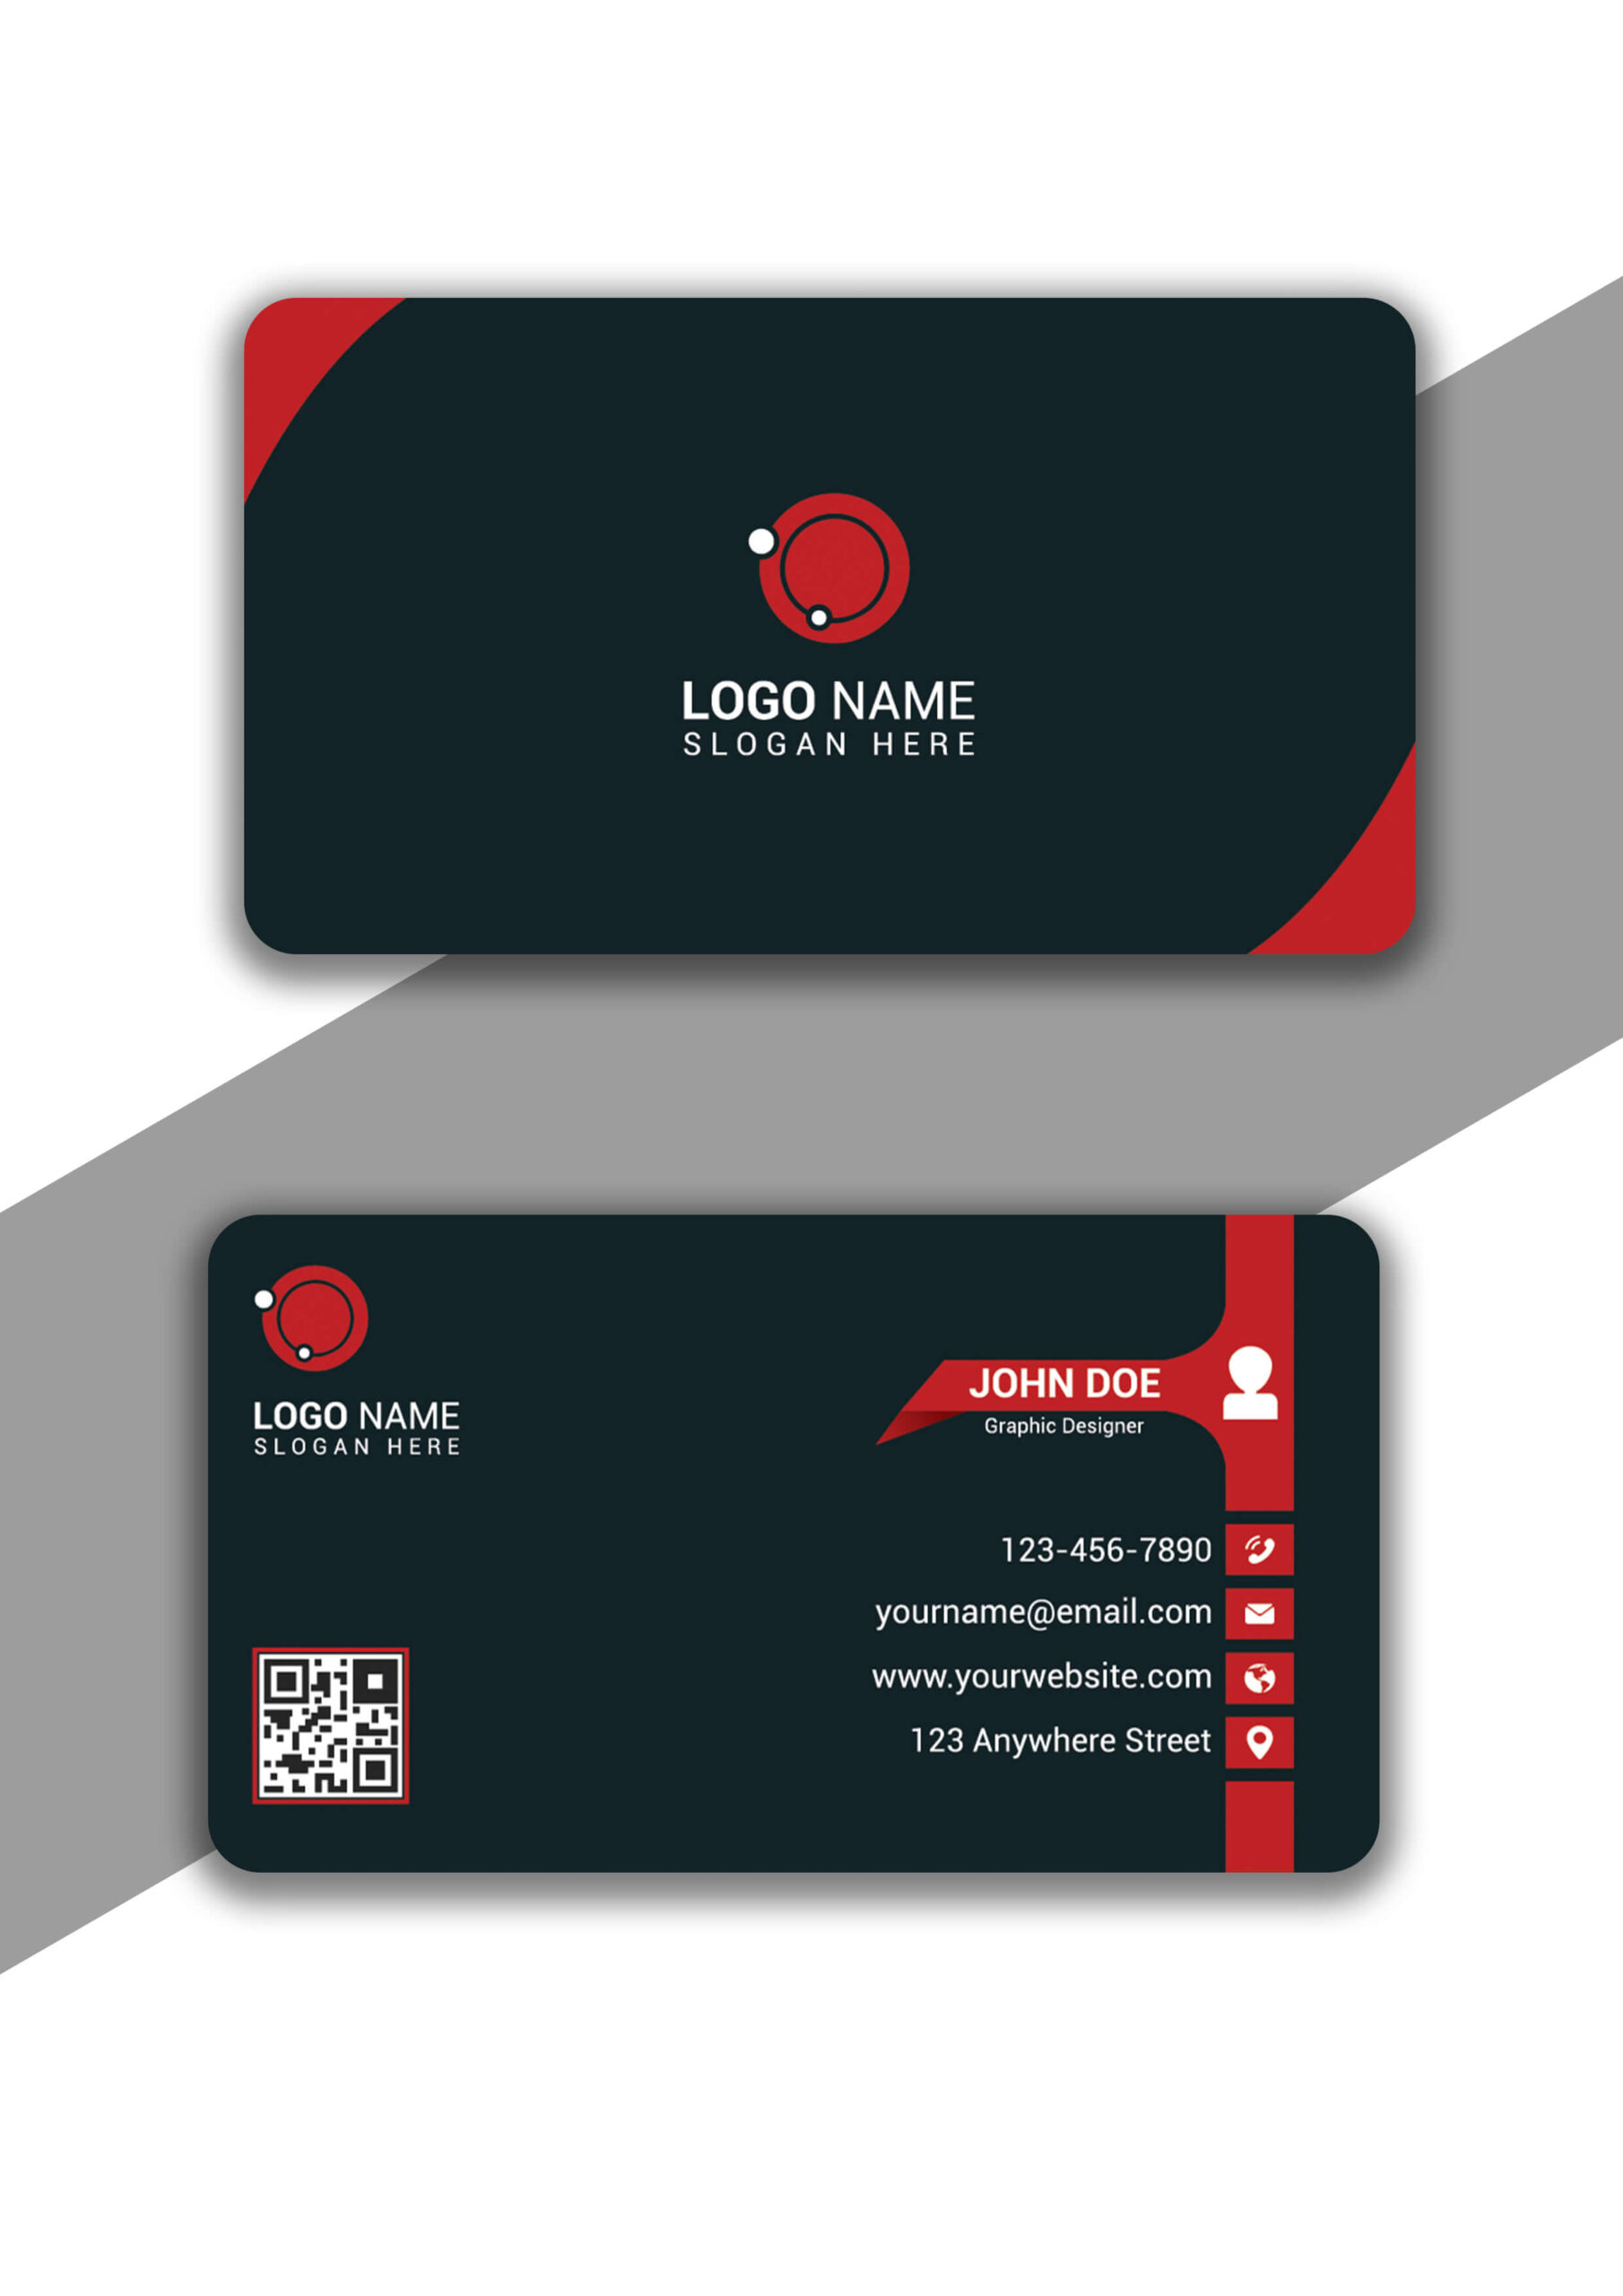 Trendy Style Red Color Business Card in Adobe Illustrator